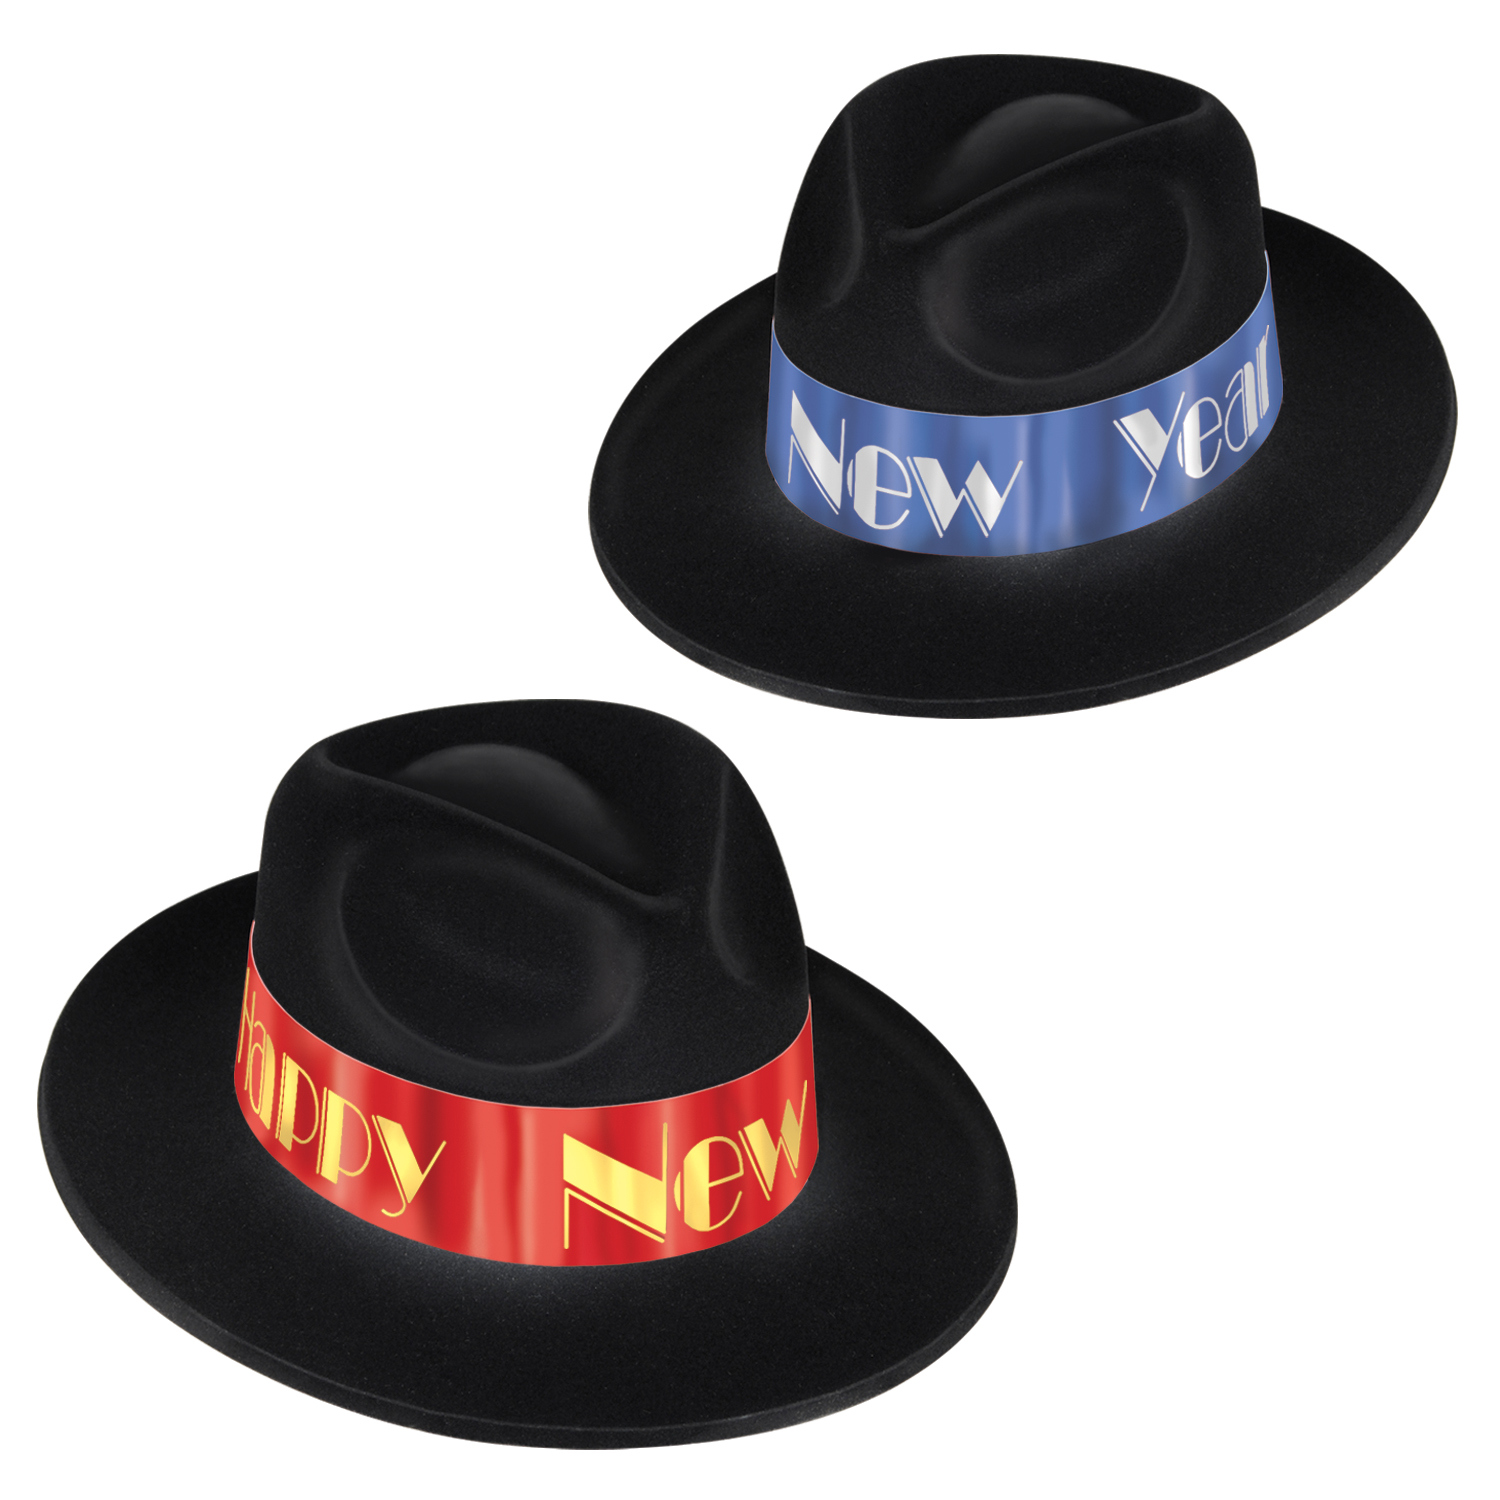 Fire & Ice Fedoras (Pack of 25) Fire & Ice Fedoras, Fedoras, Party Fedoras, Party Hats, Hats, New Year's Hats, New Year's Party Hats, New Year's Eve Hats, New Year's Eve Party Hats